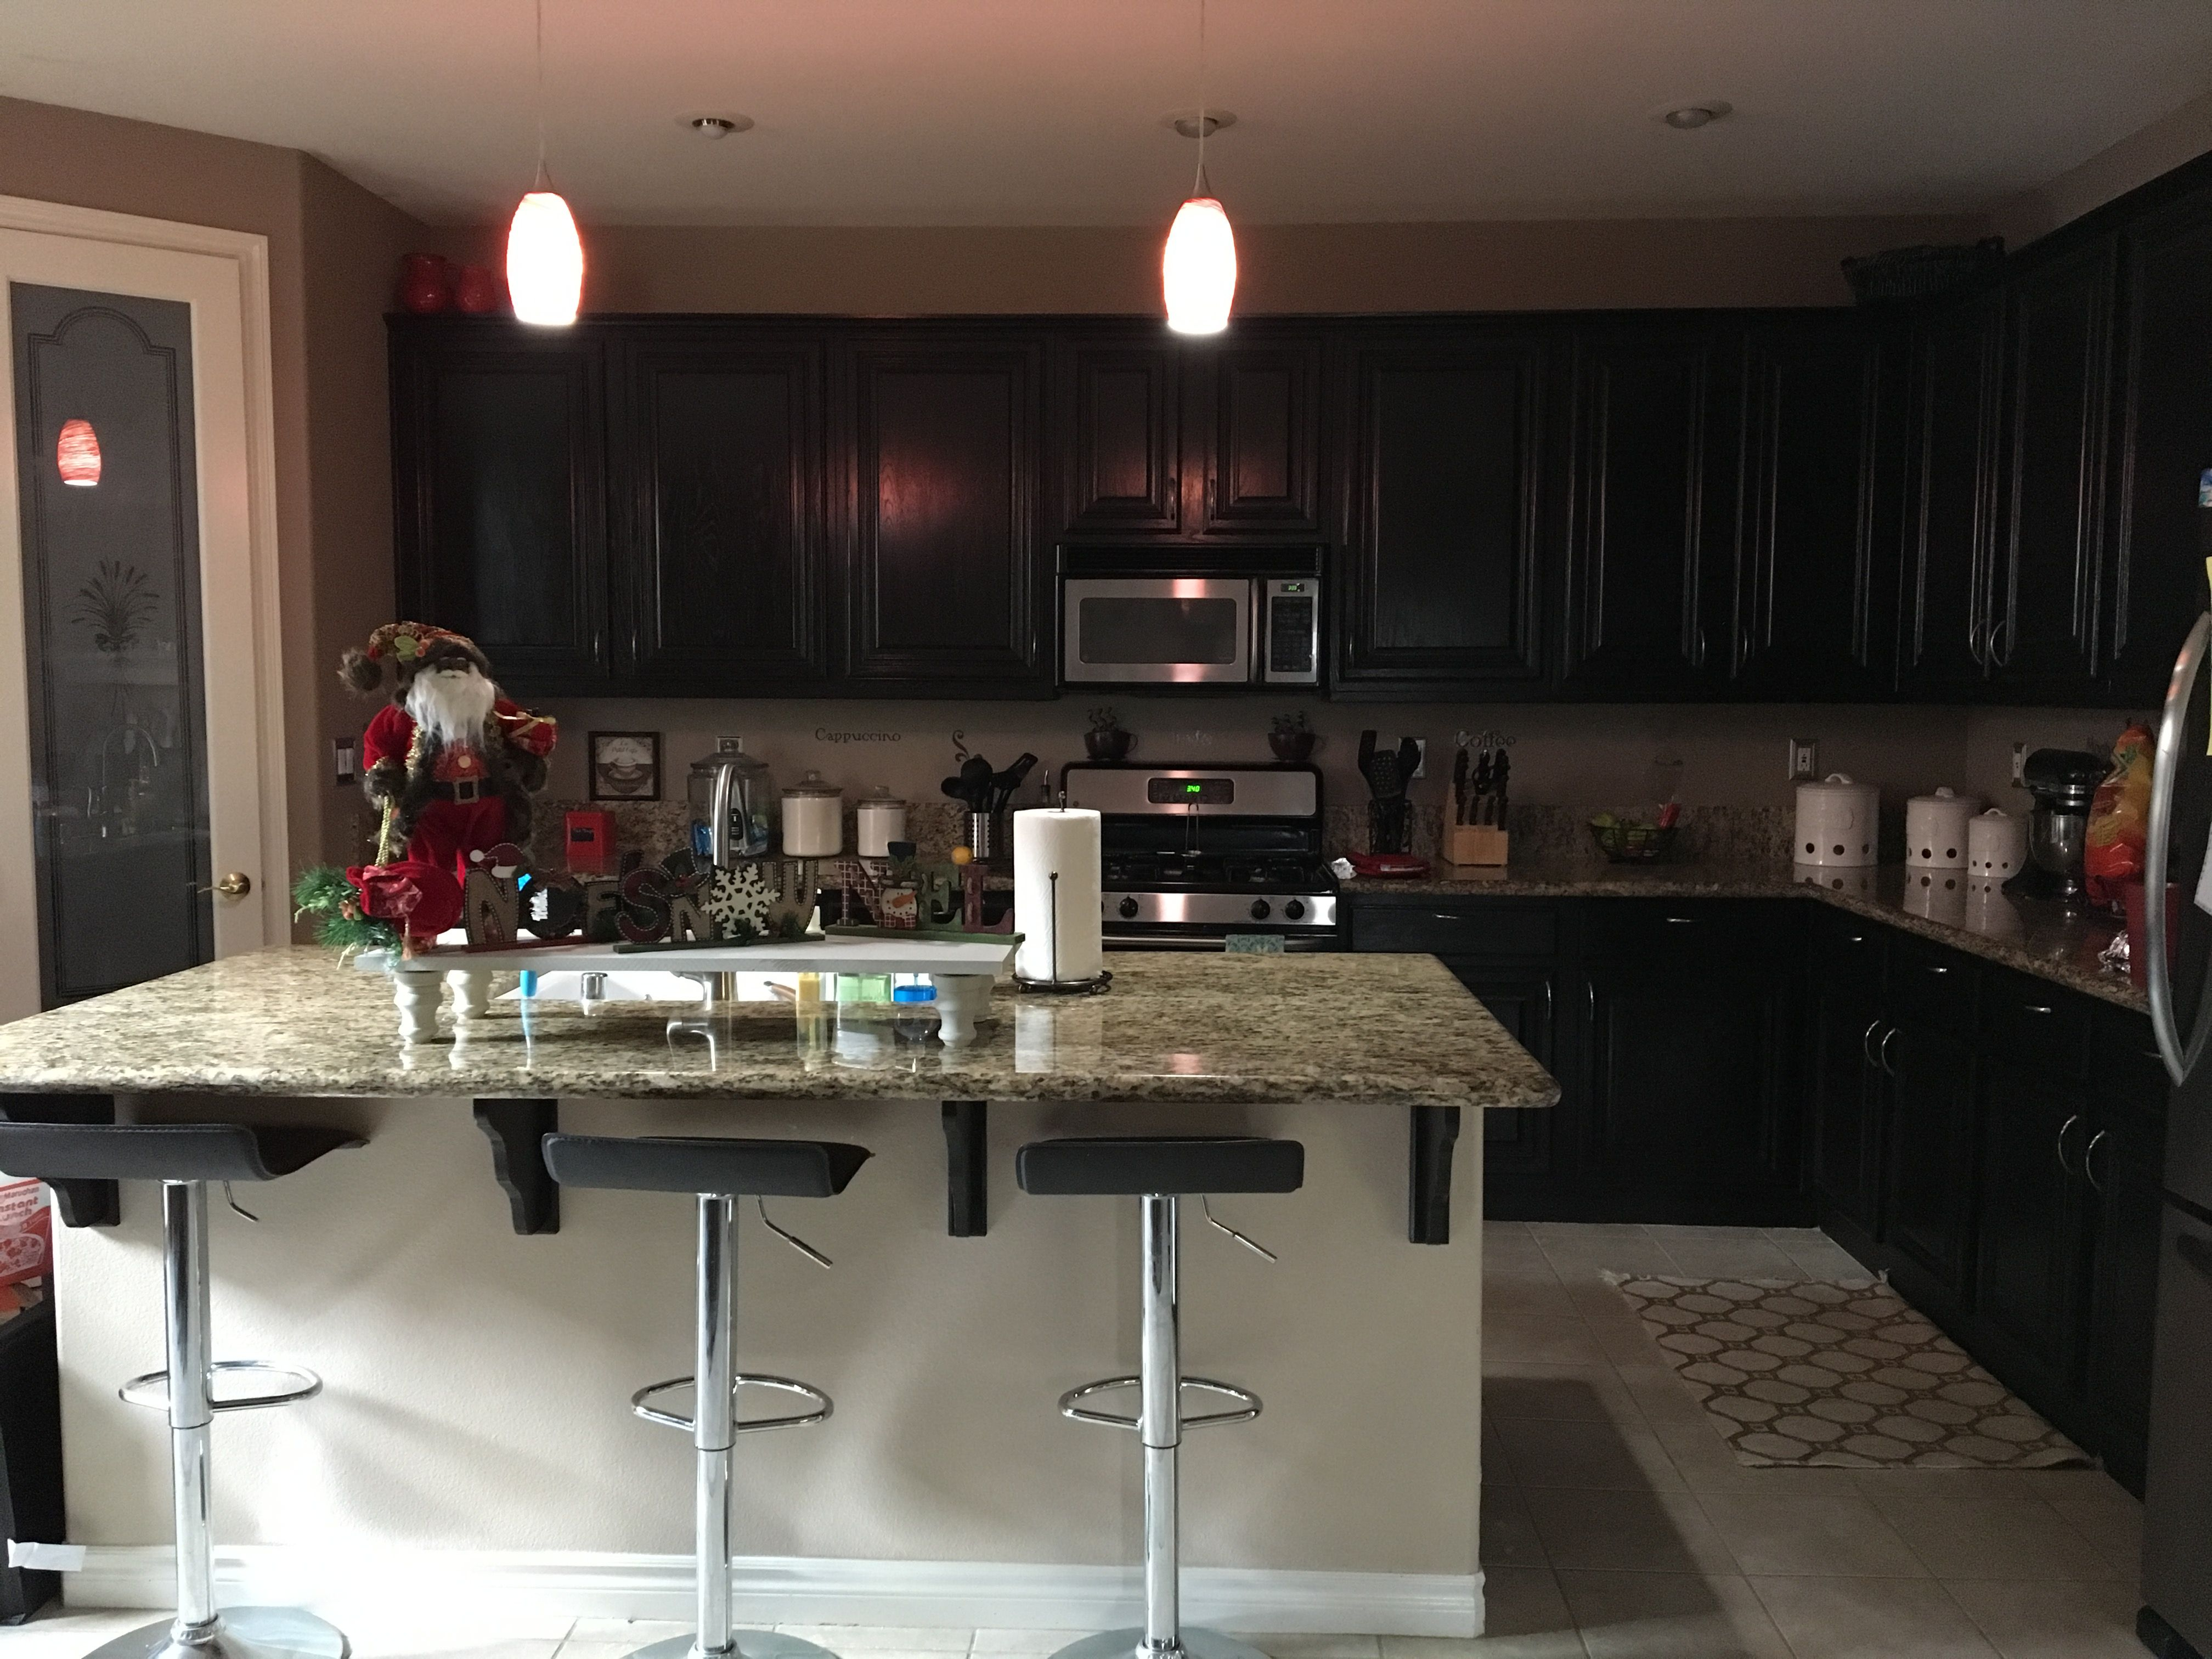 java gel stain kitchen cabinets stained kitchen cabinets gel stain kitchen cabinets java on kitchen cabinets java id=61304